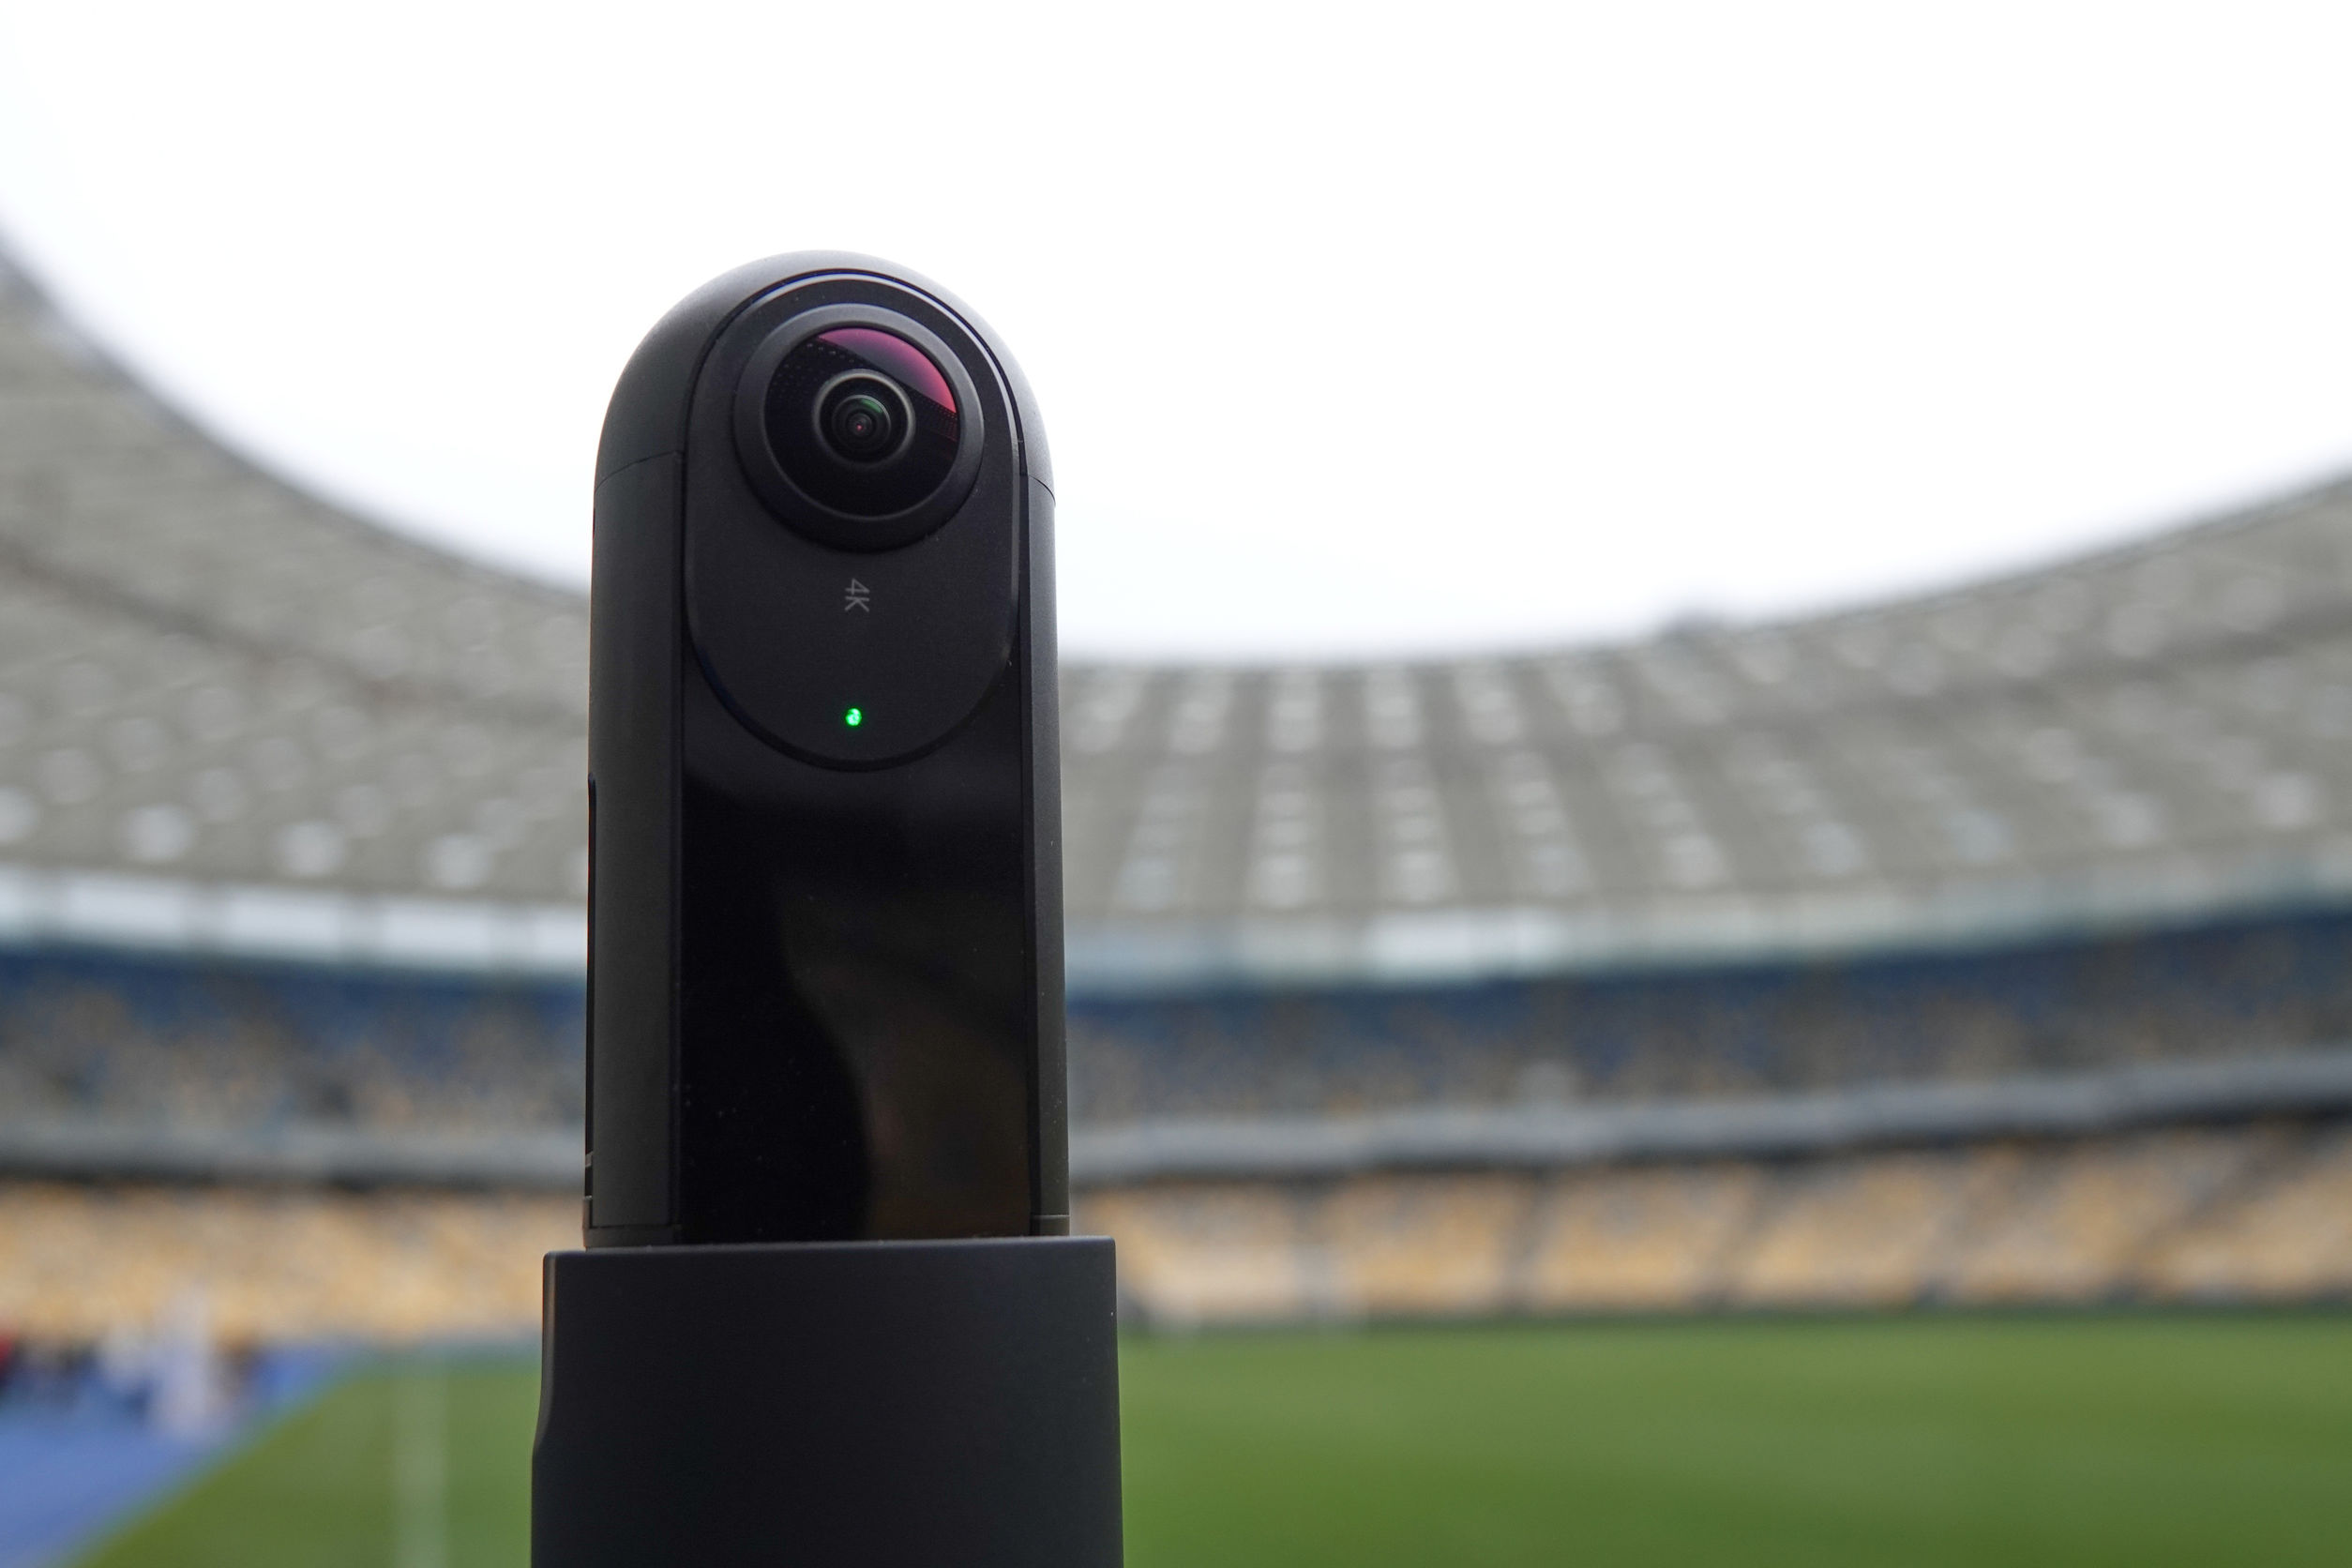 The camera that shoots 360 degrees in the background of the stadium.